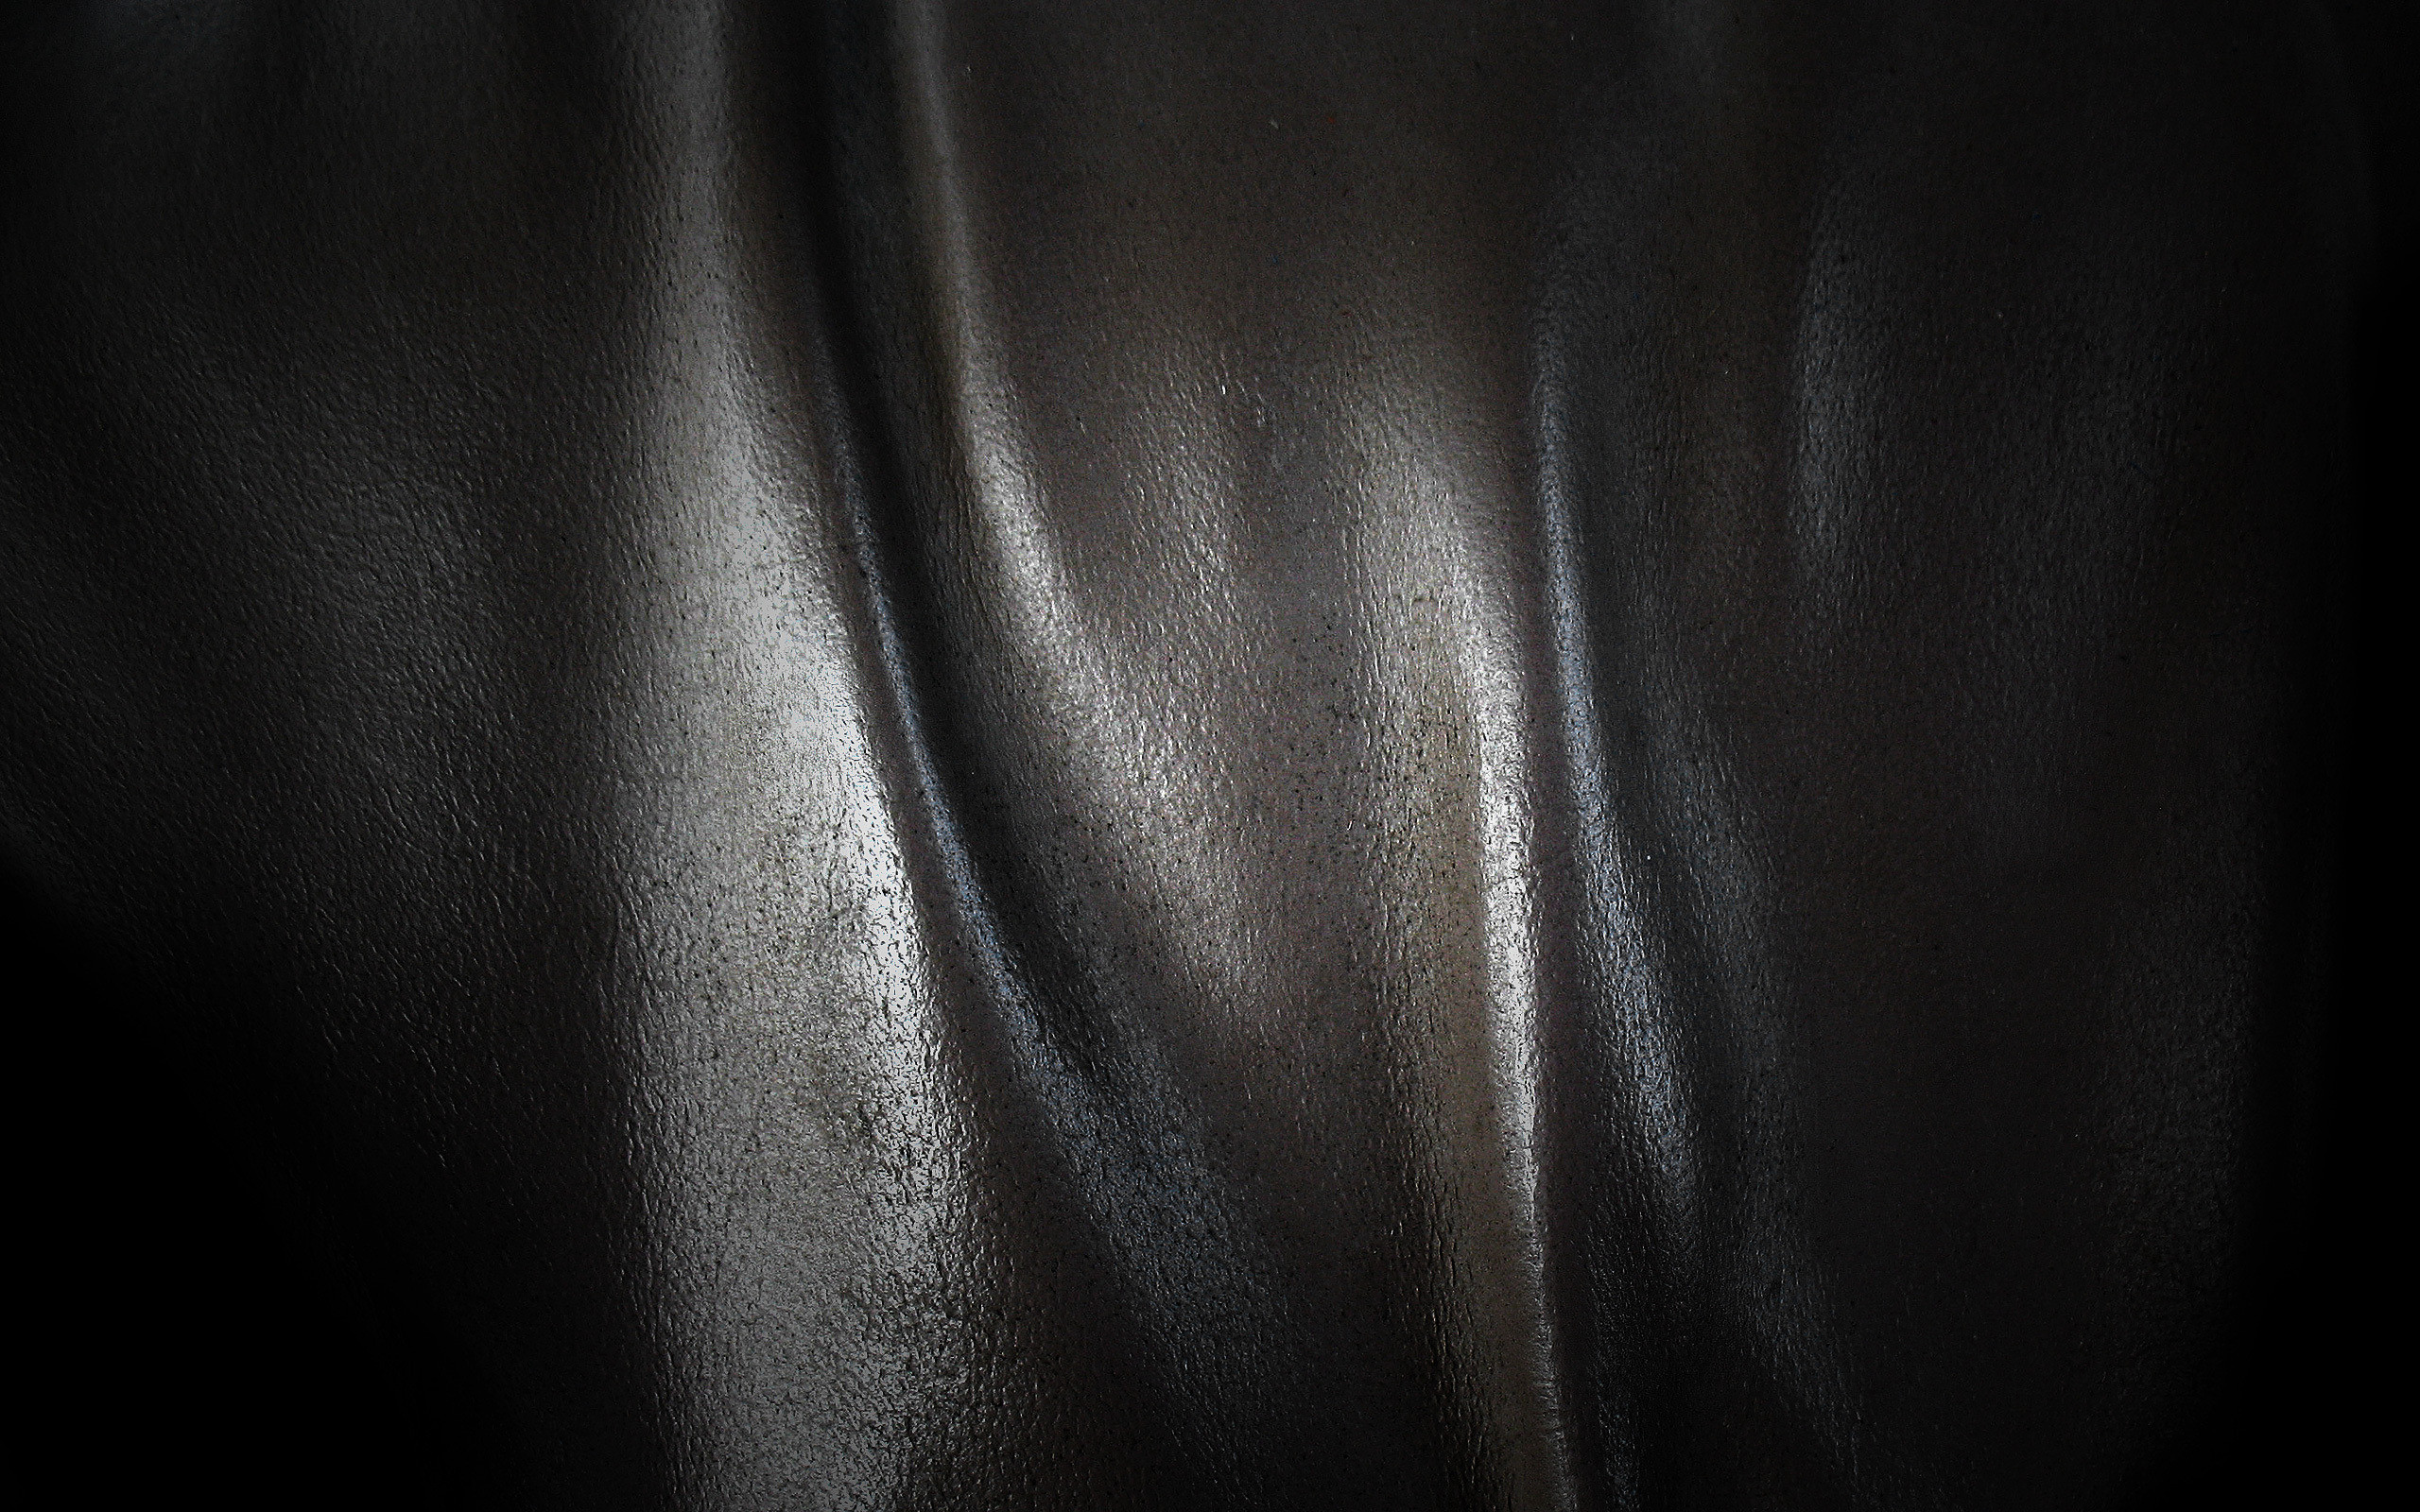 Black Hd Wallpaper Texture Hd Pictures 4 HD Wallpapers